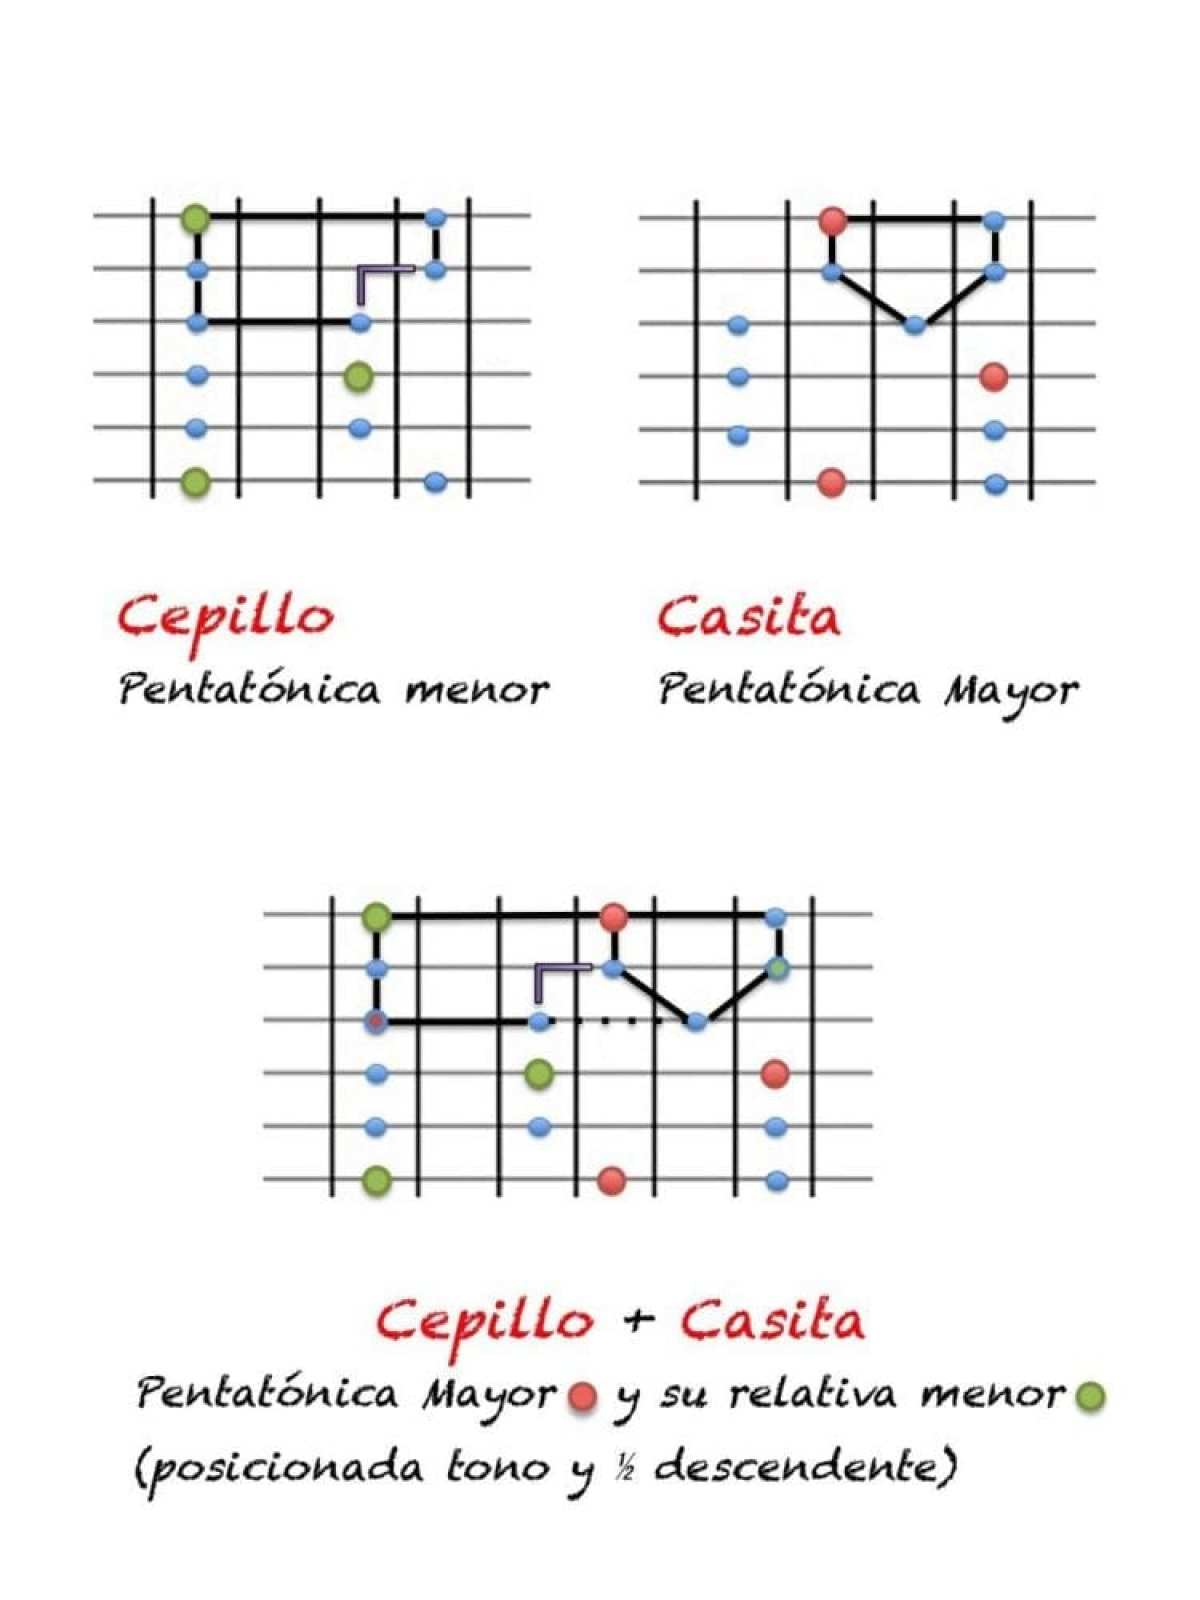 Casita y cepillo